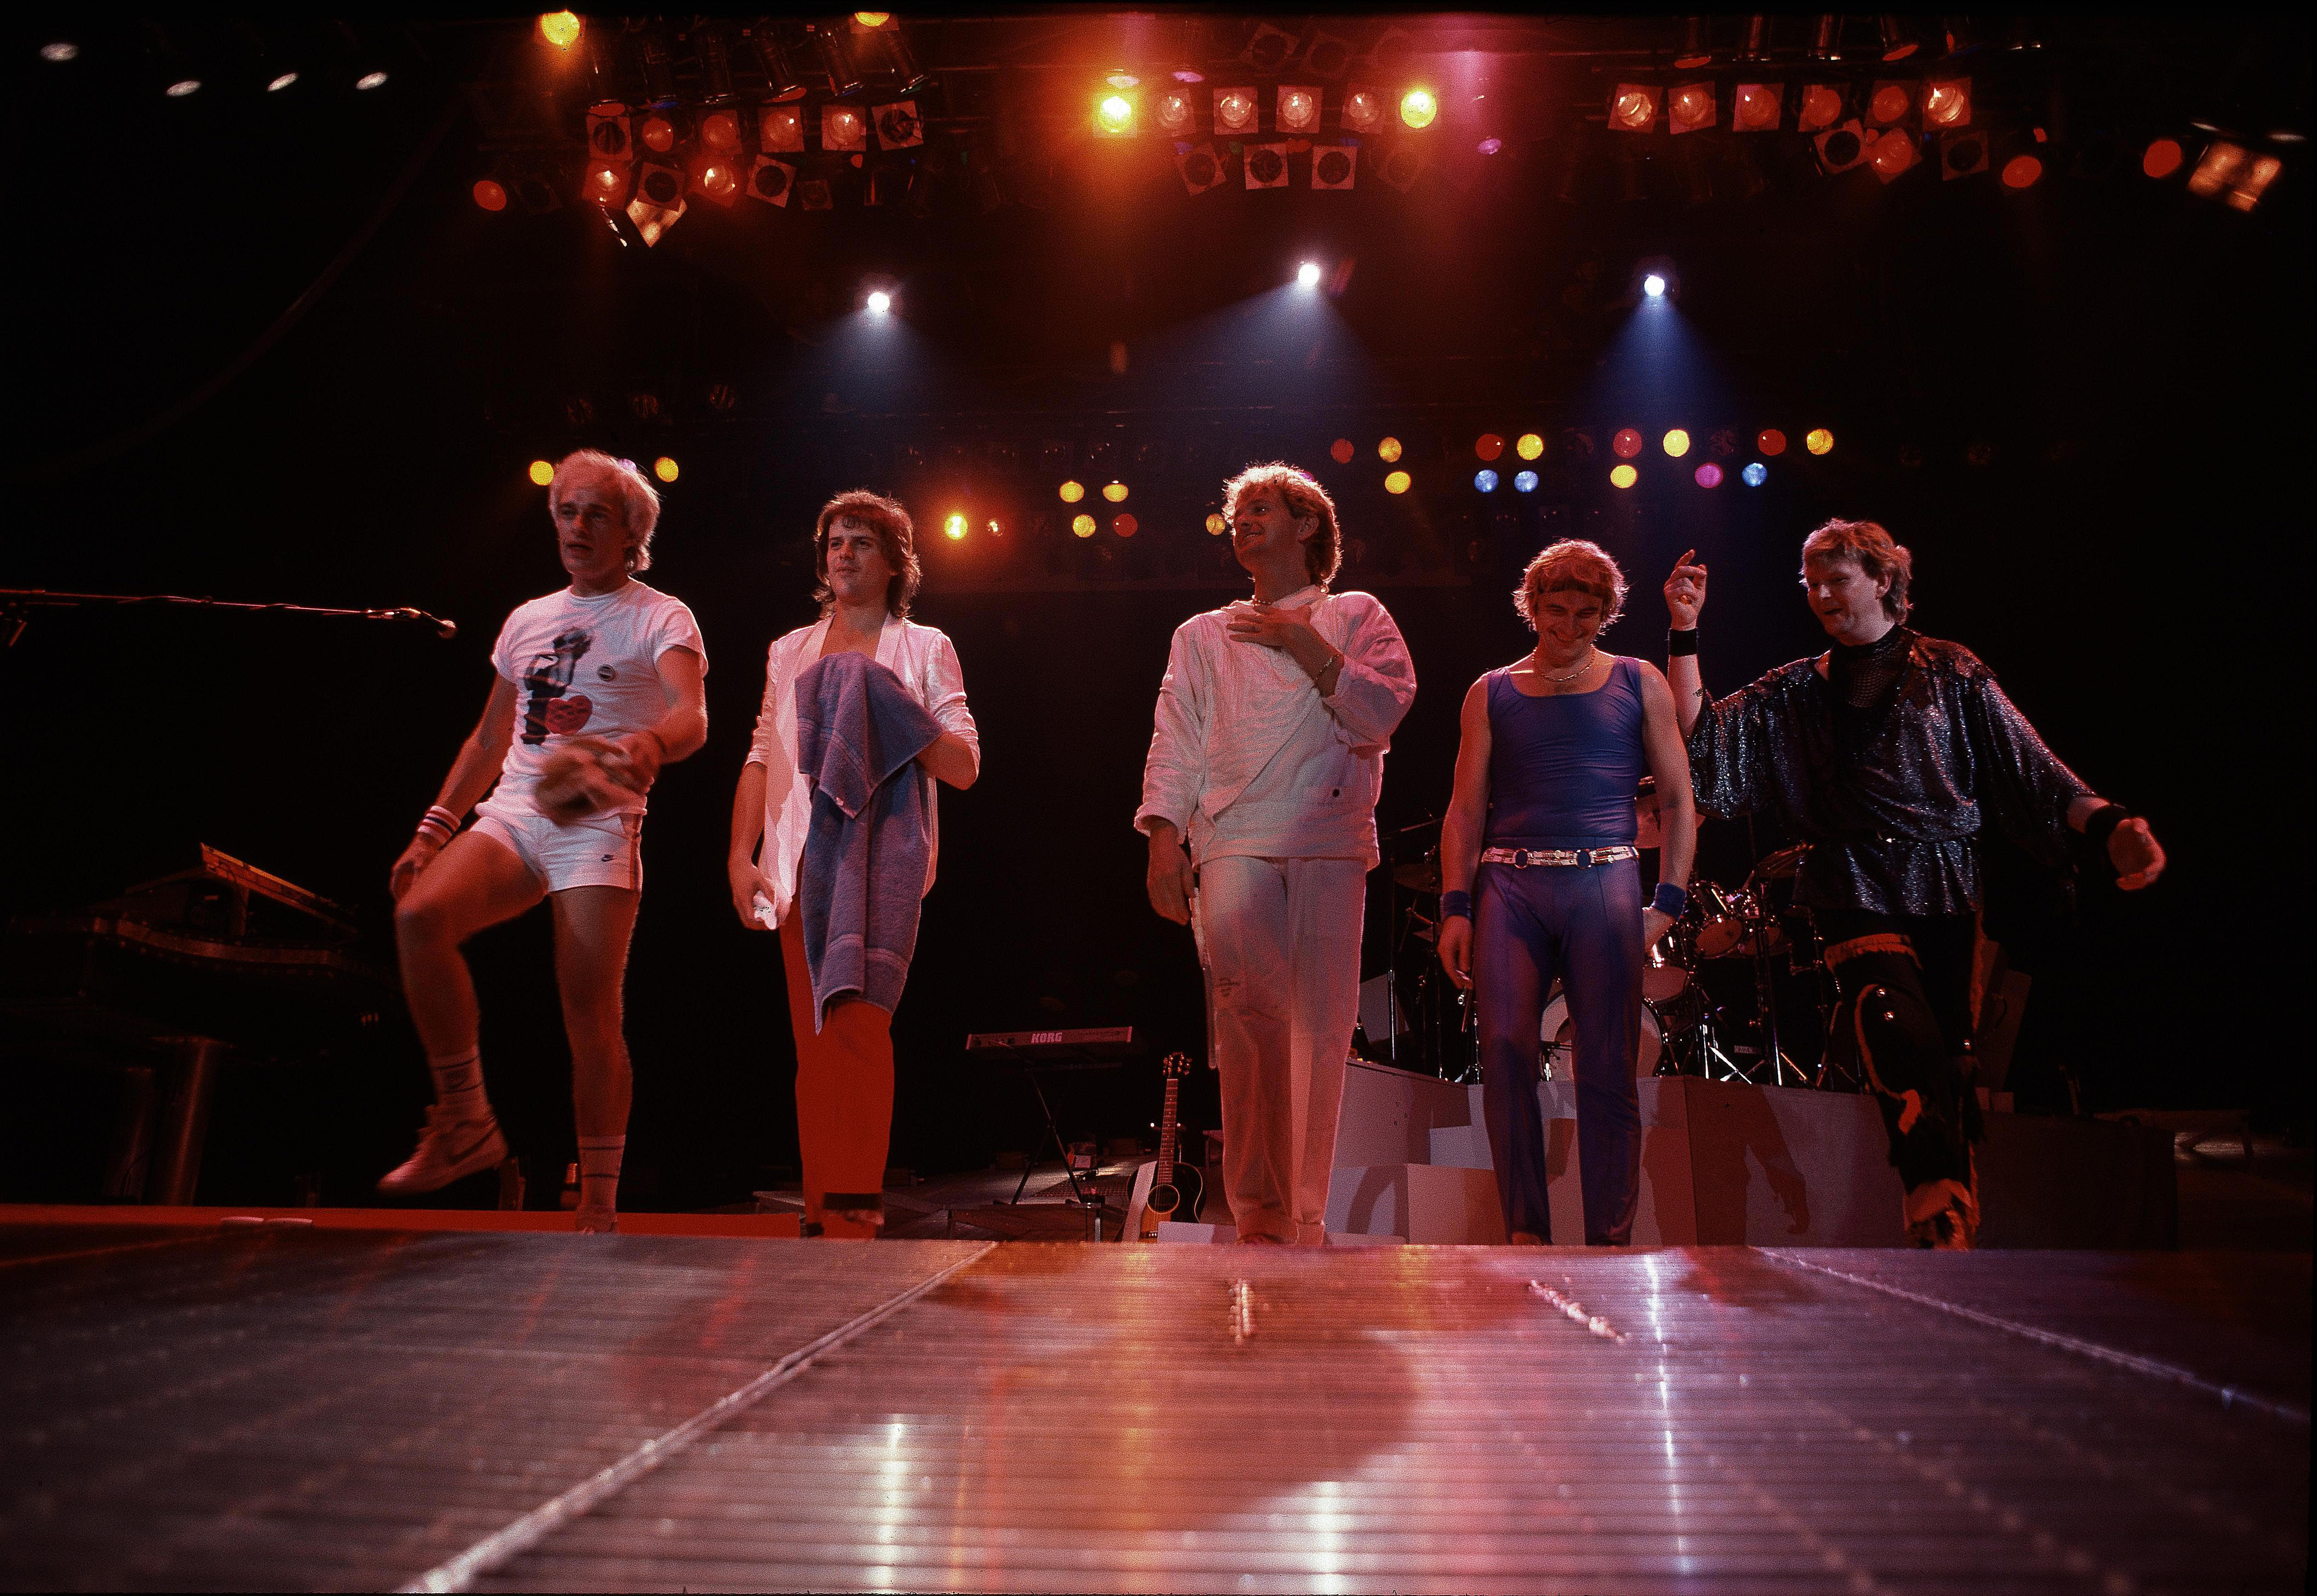 The '80s lineup of English progressive rock group Yes featured shifting personnel and also delivered a more mainstream arena rock sound during the decade.